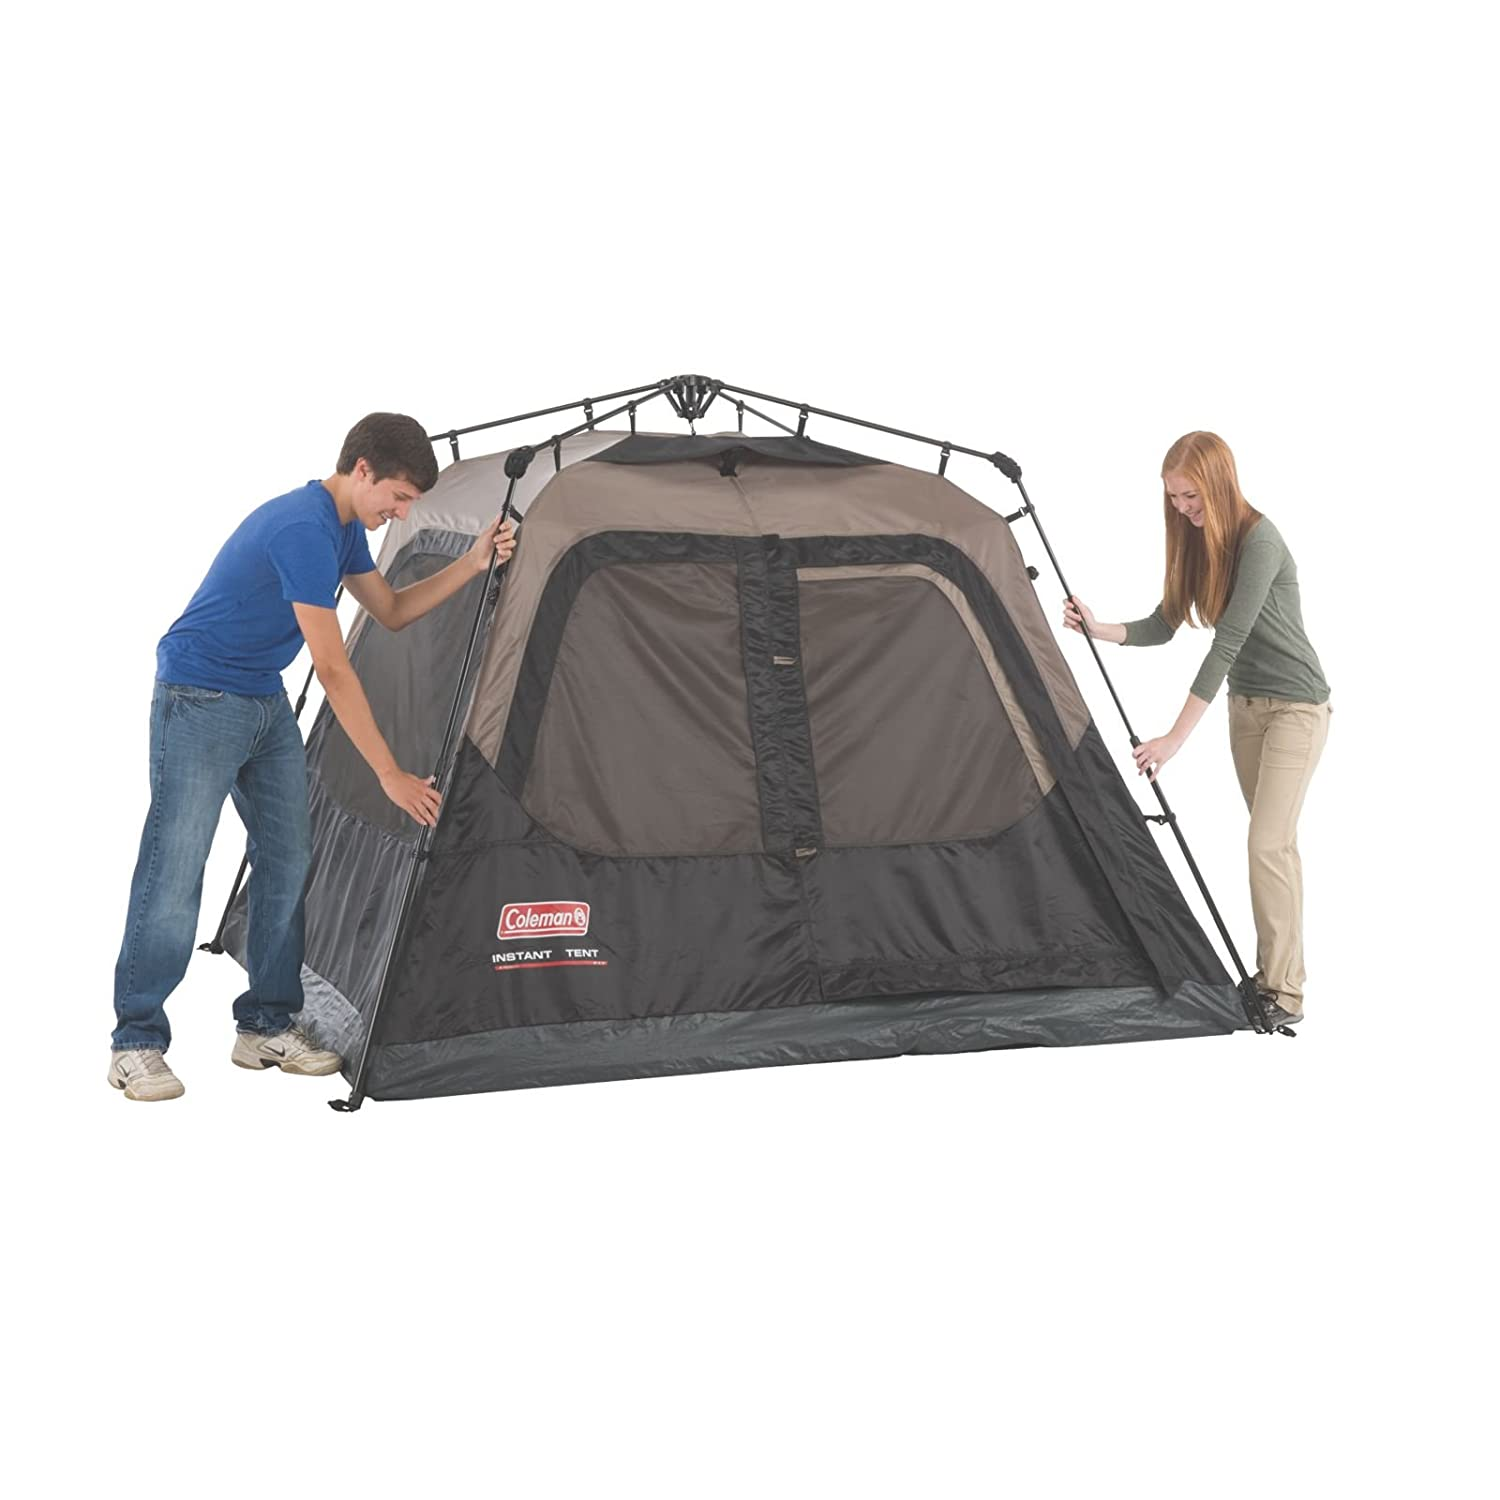 Best Quick Set Up Tents For Easy Camping Sleeping With Air